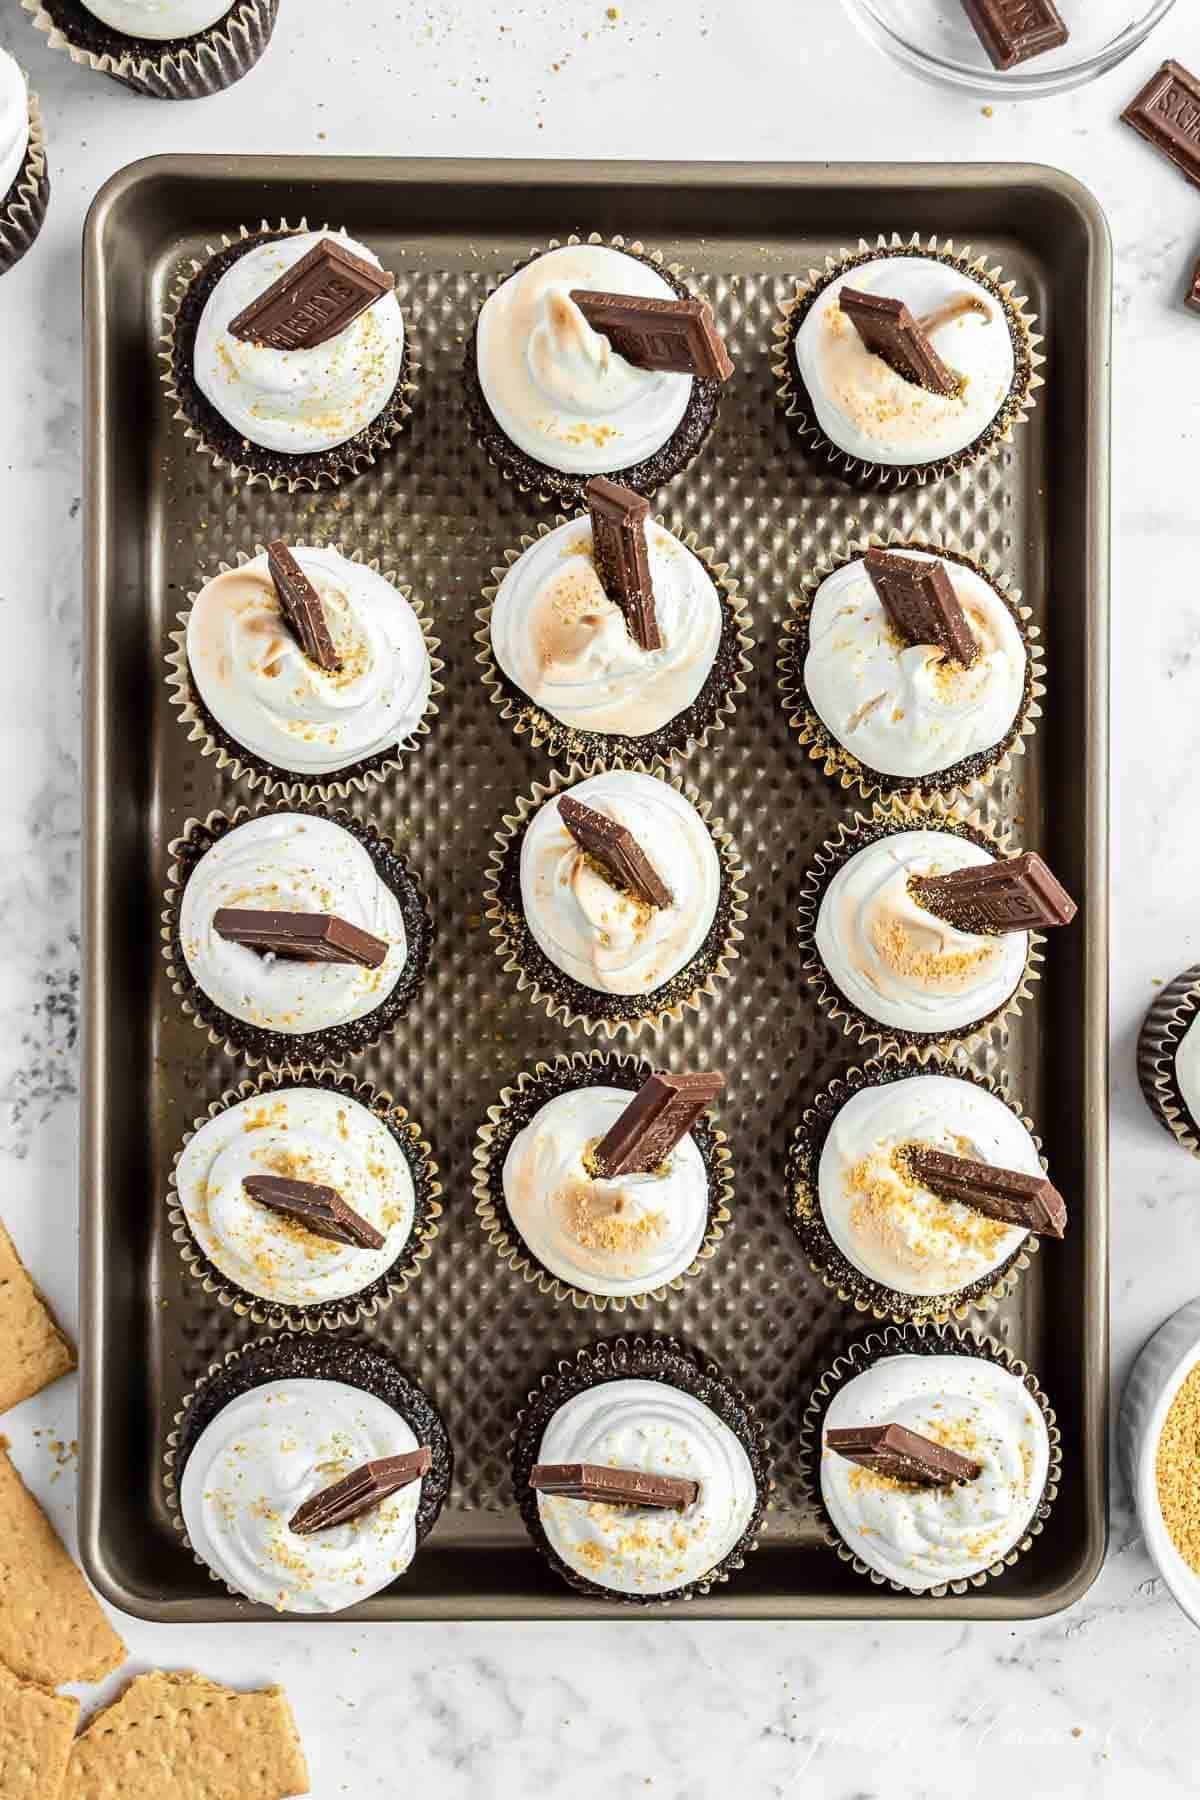 Homemade smores cupcakes on a baking sheet, lined up and topped with marshmallow frosting and a piece of Hersheys bar.